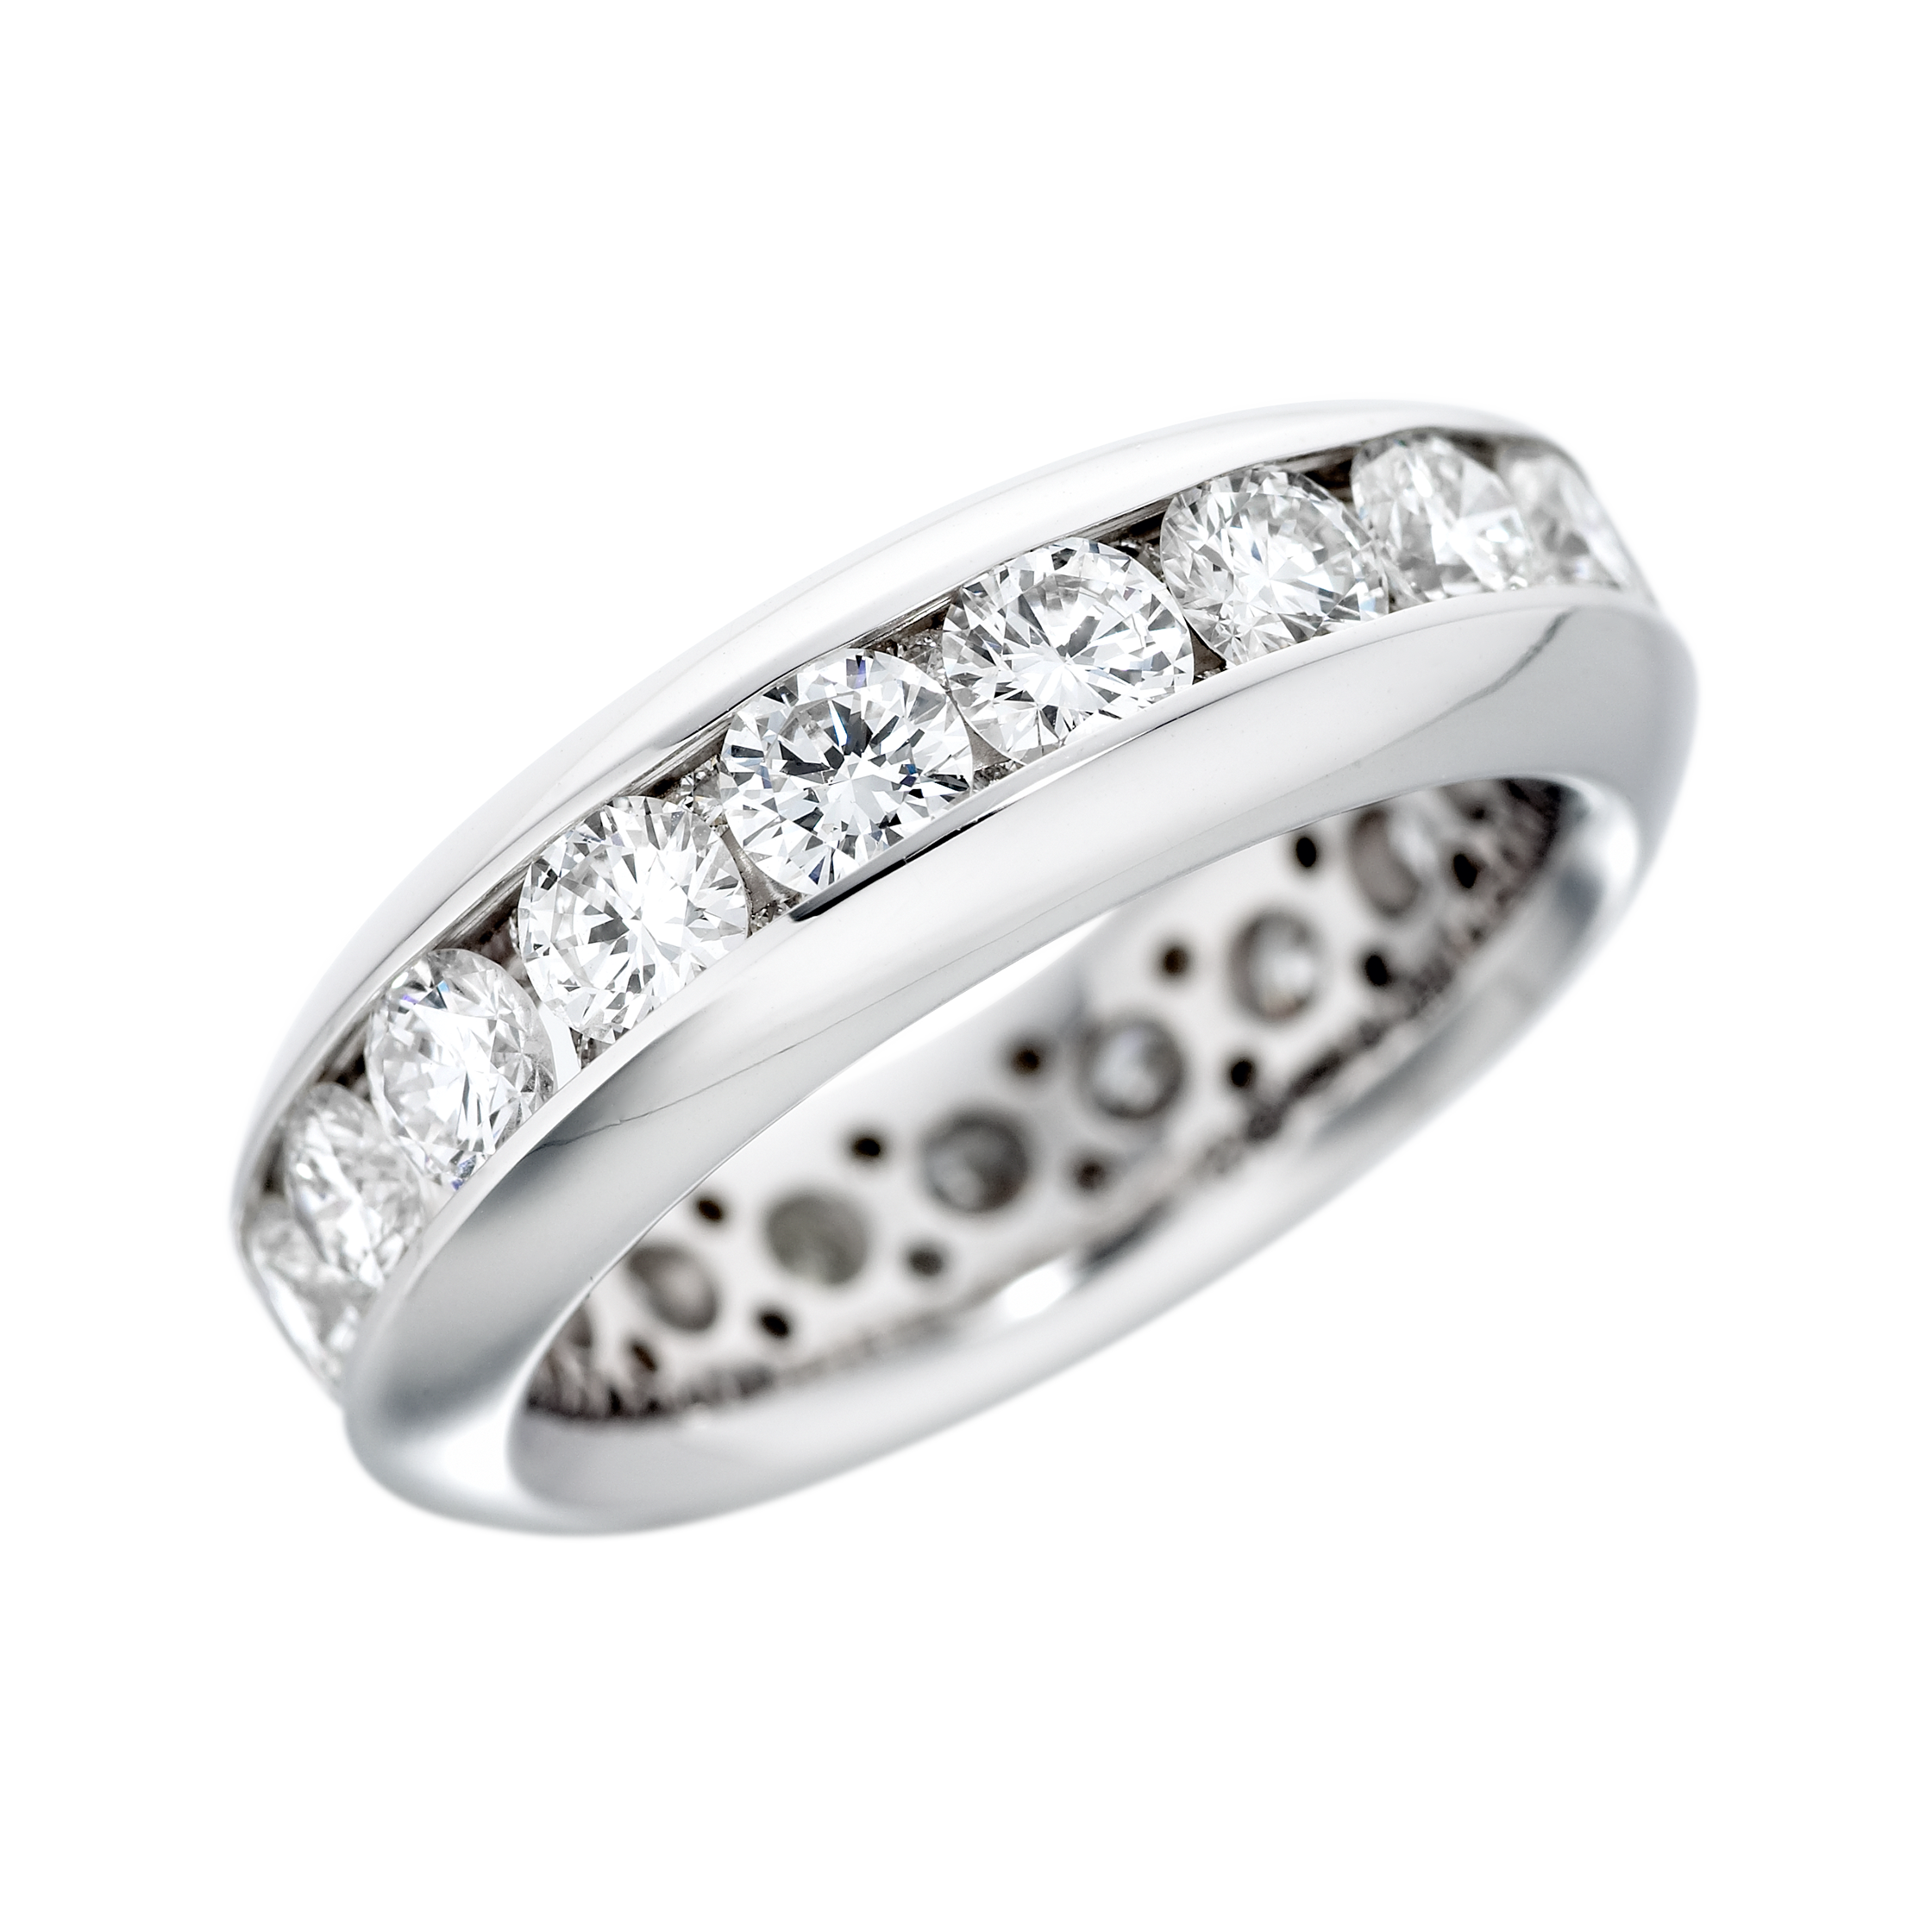 ring dc rings set band collections eternity our diamond castle bands wishbone carat jewellery